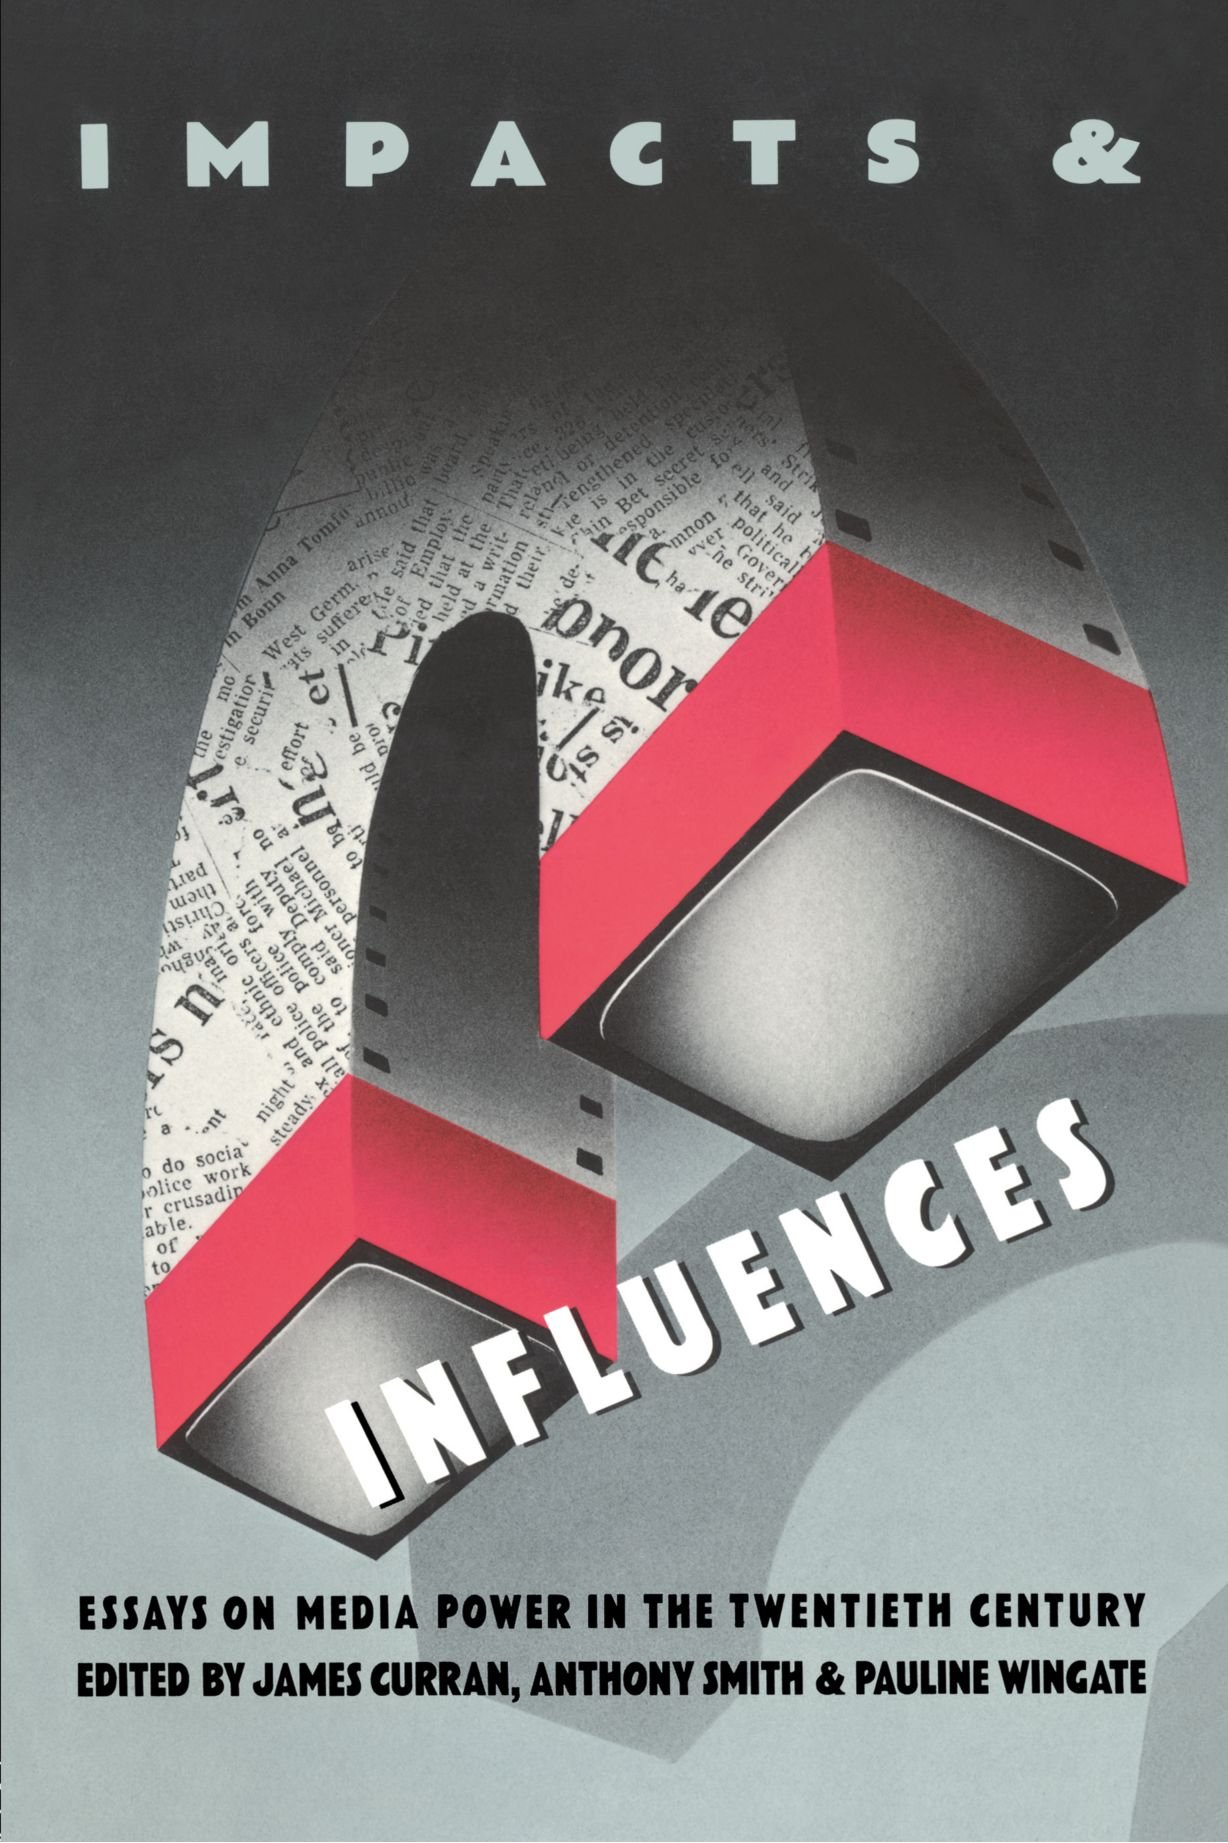 impacts and influences media power in the twentieth century impacts and influences media power in the twentieth century essays on media power in the twentieth century amazon co uk james curran anthony smith